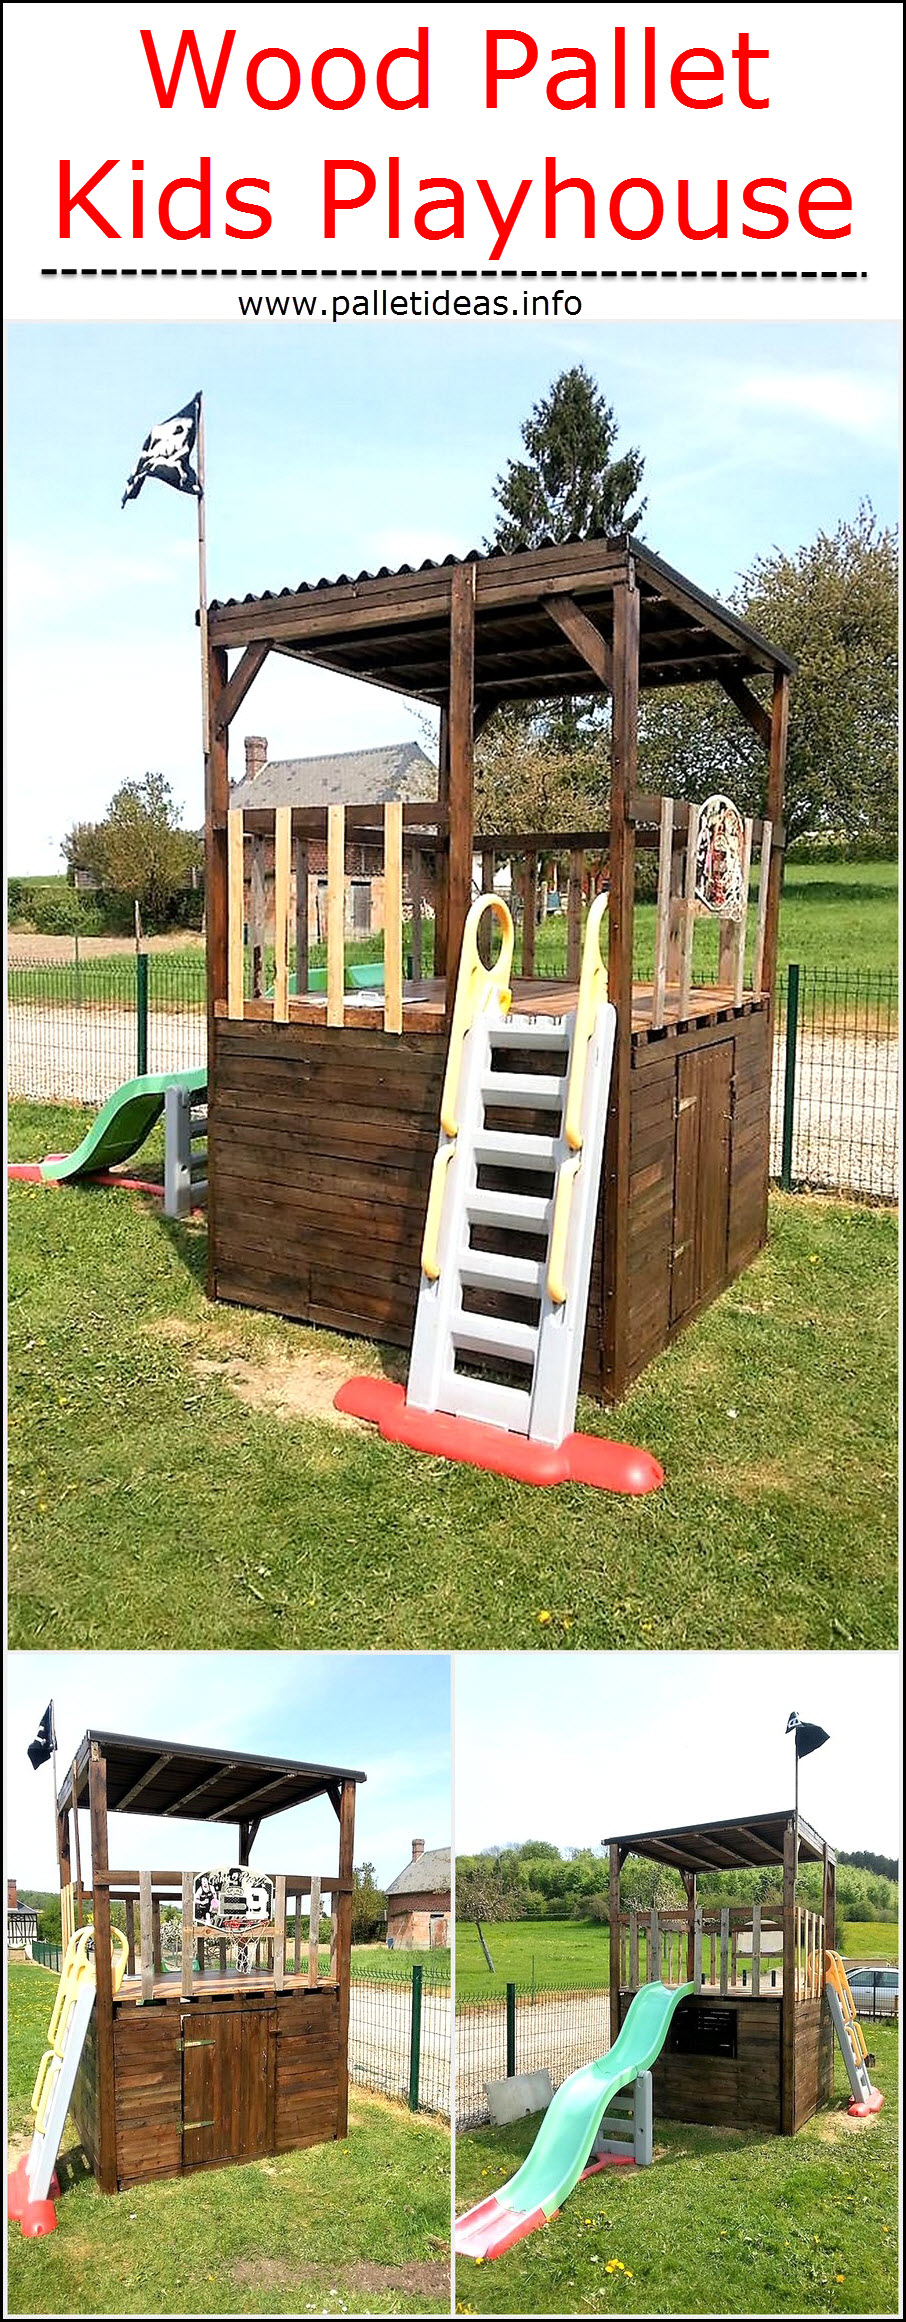 wood-pallet-kids-playhouse